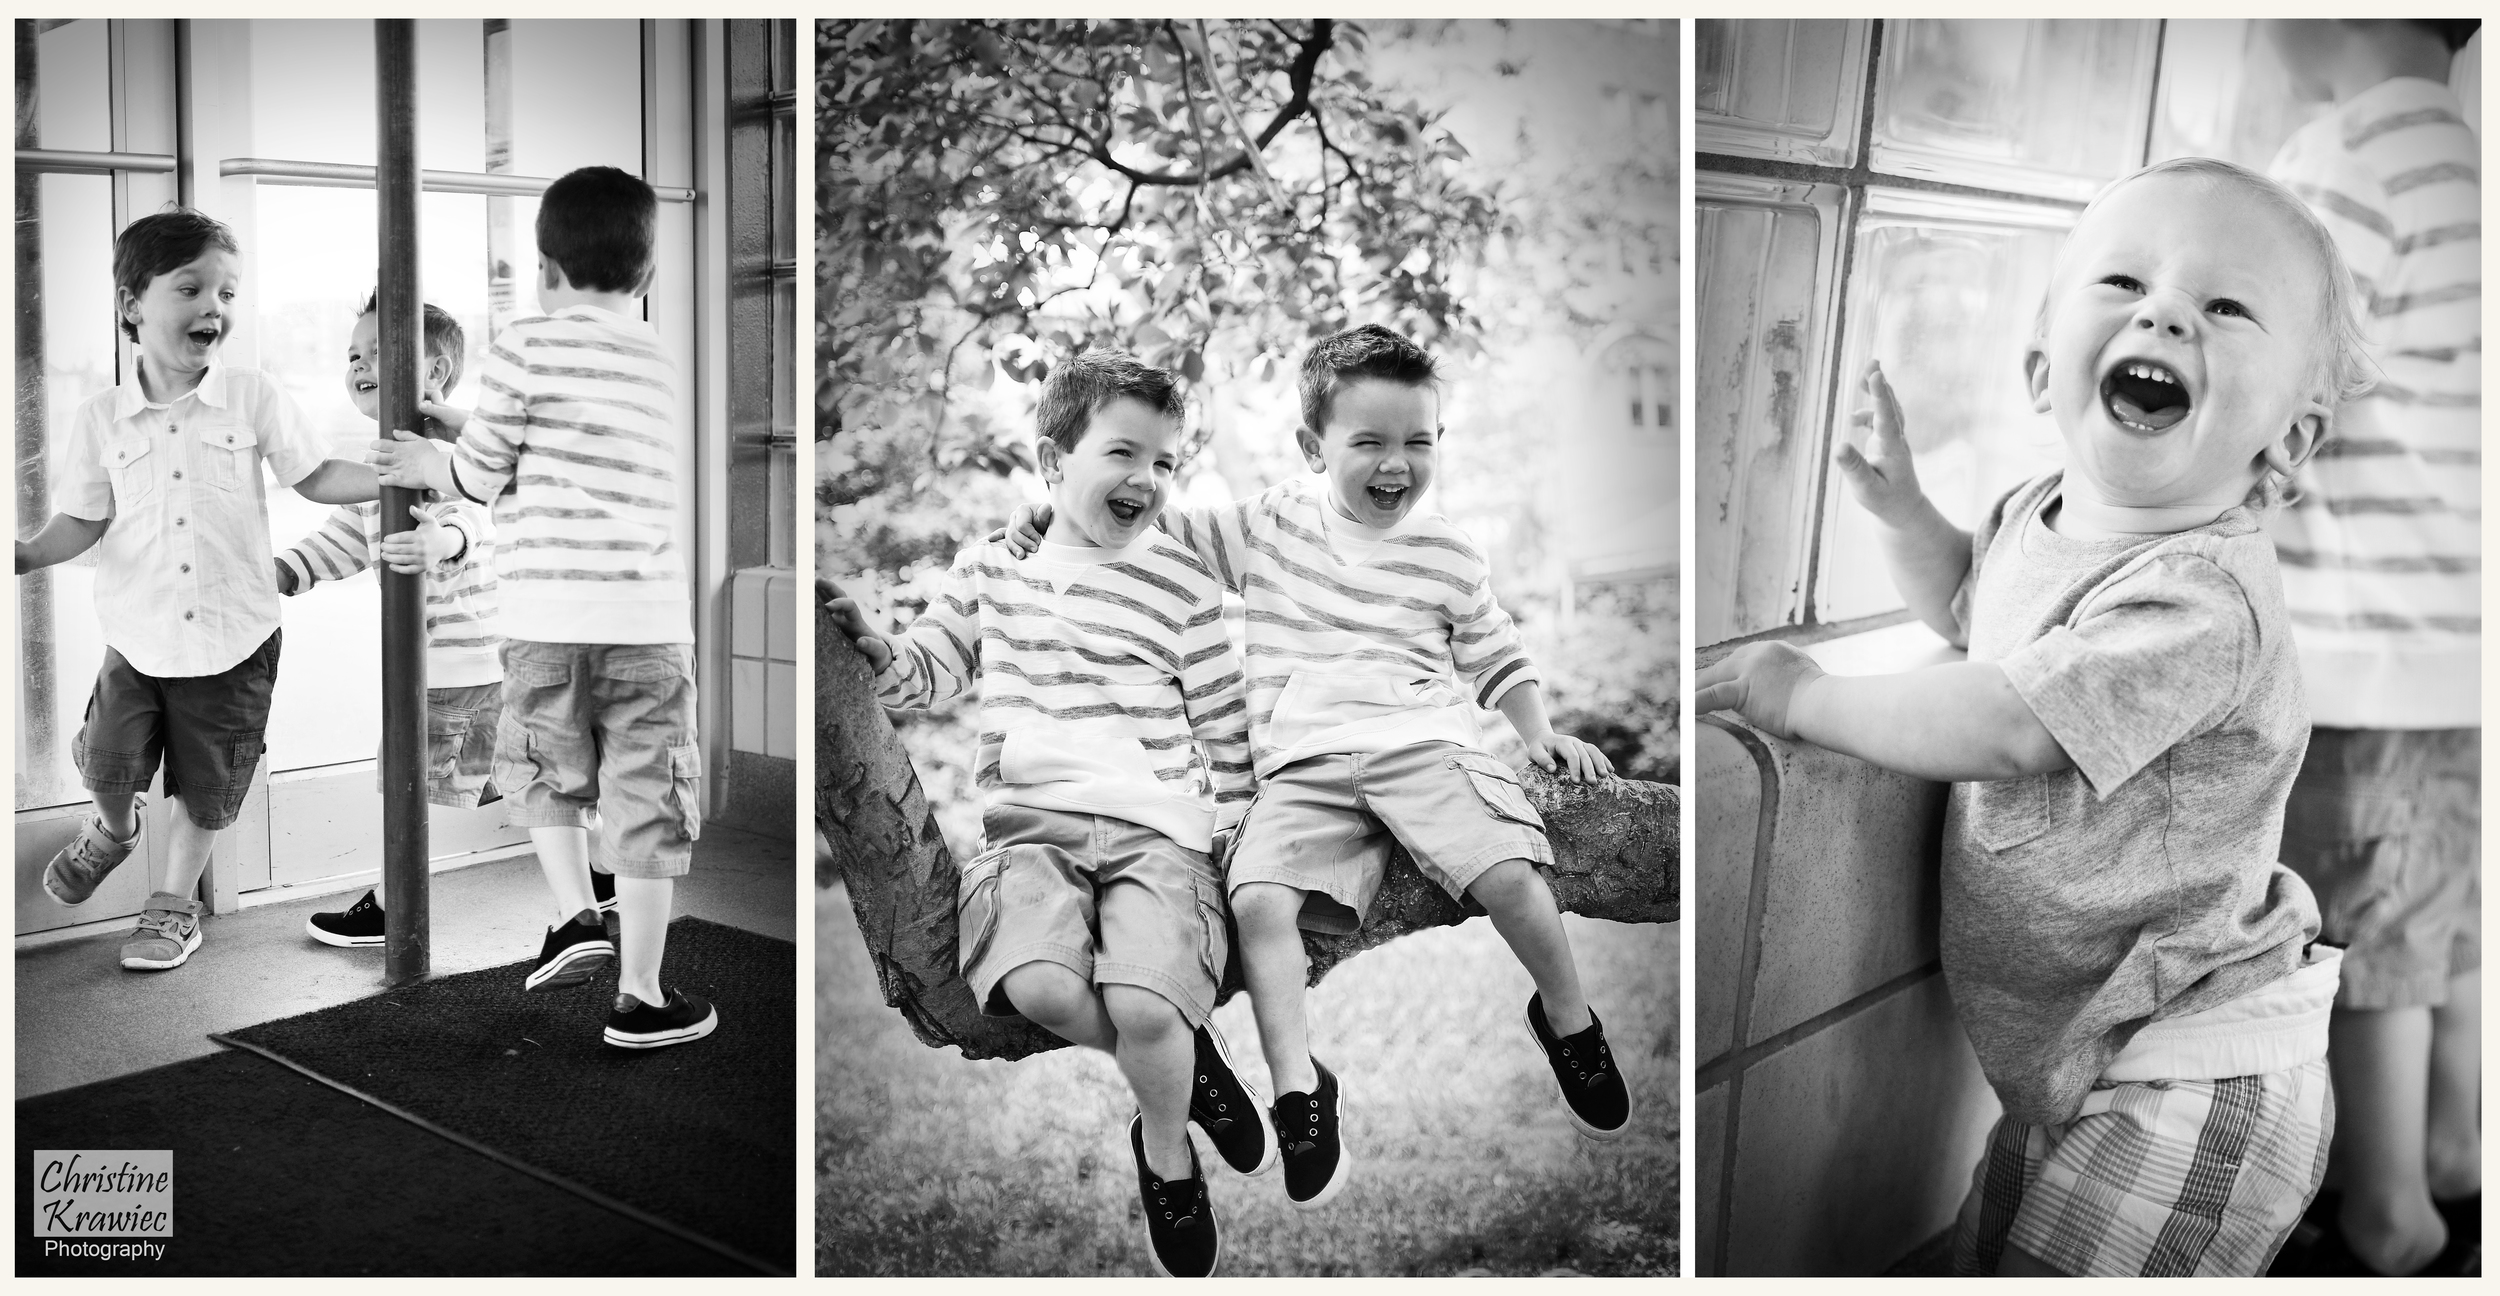 Christine Krawiec Photography - Philadelphia Family Photographer